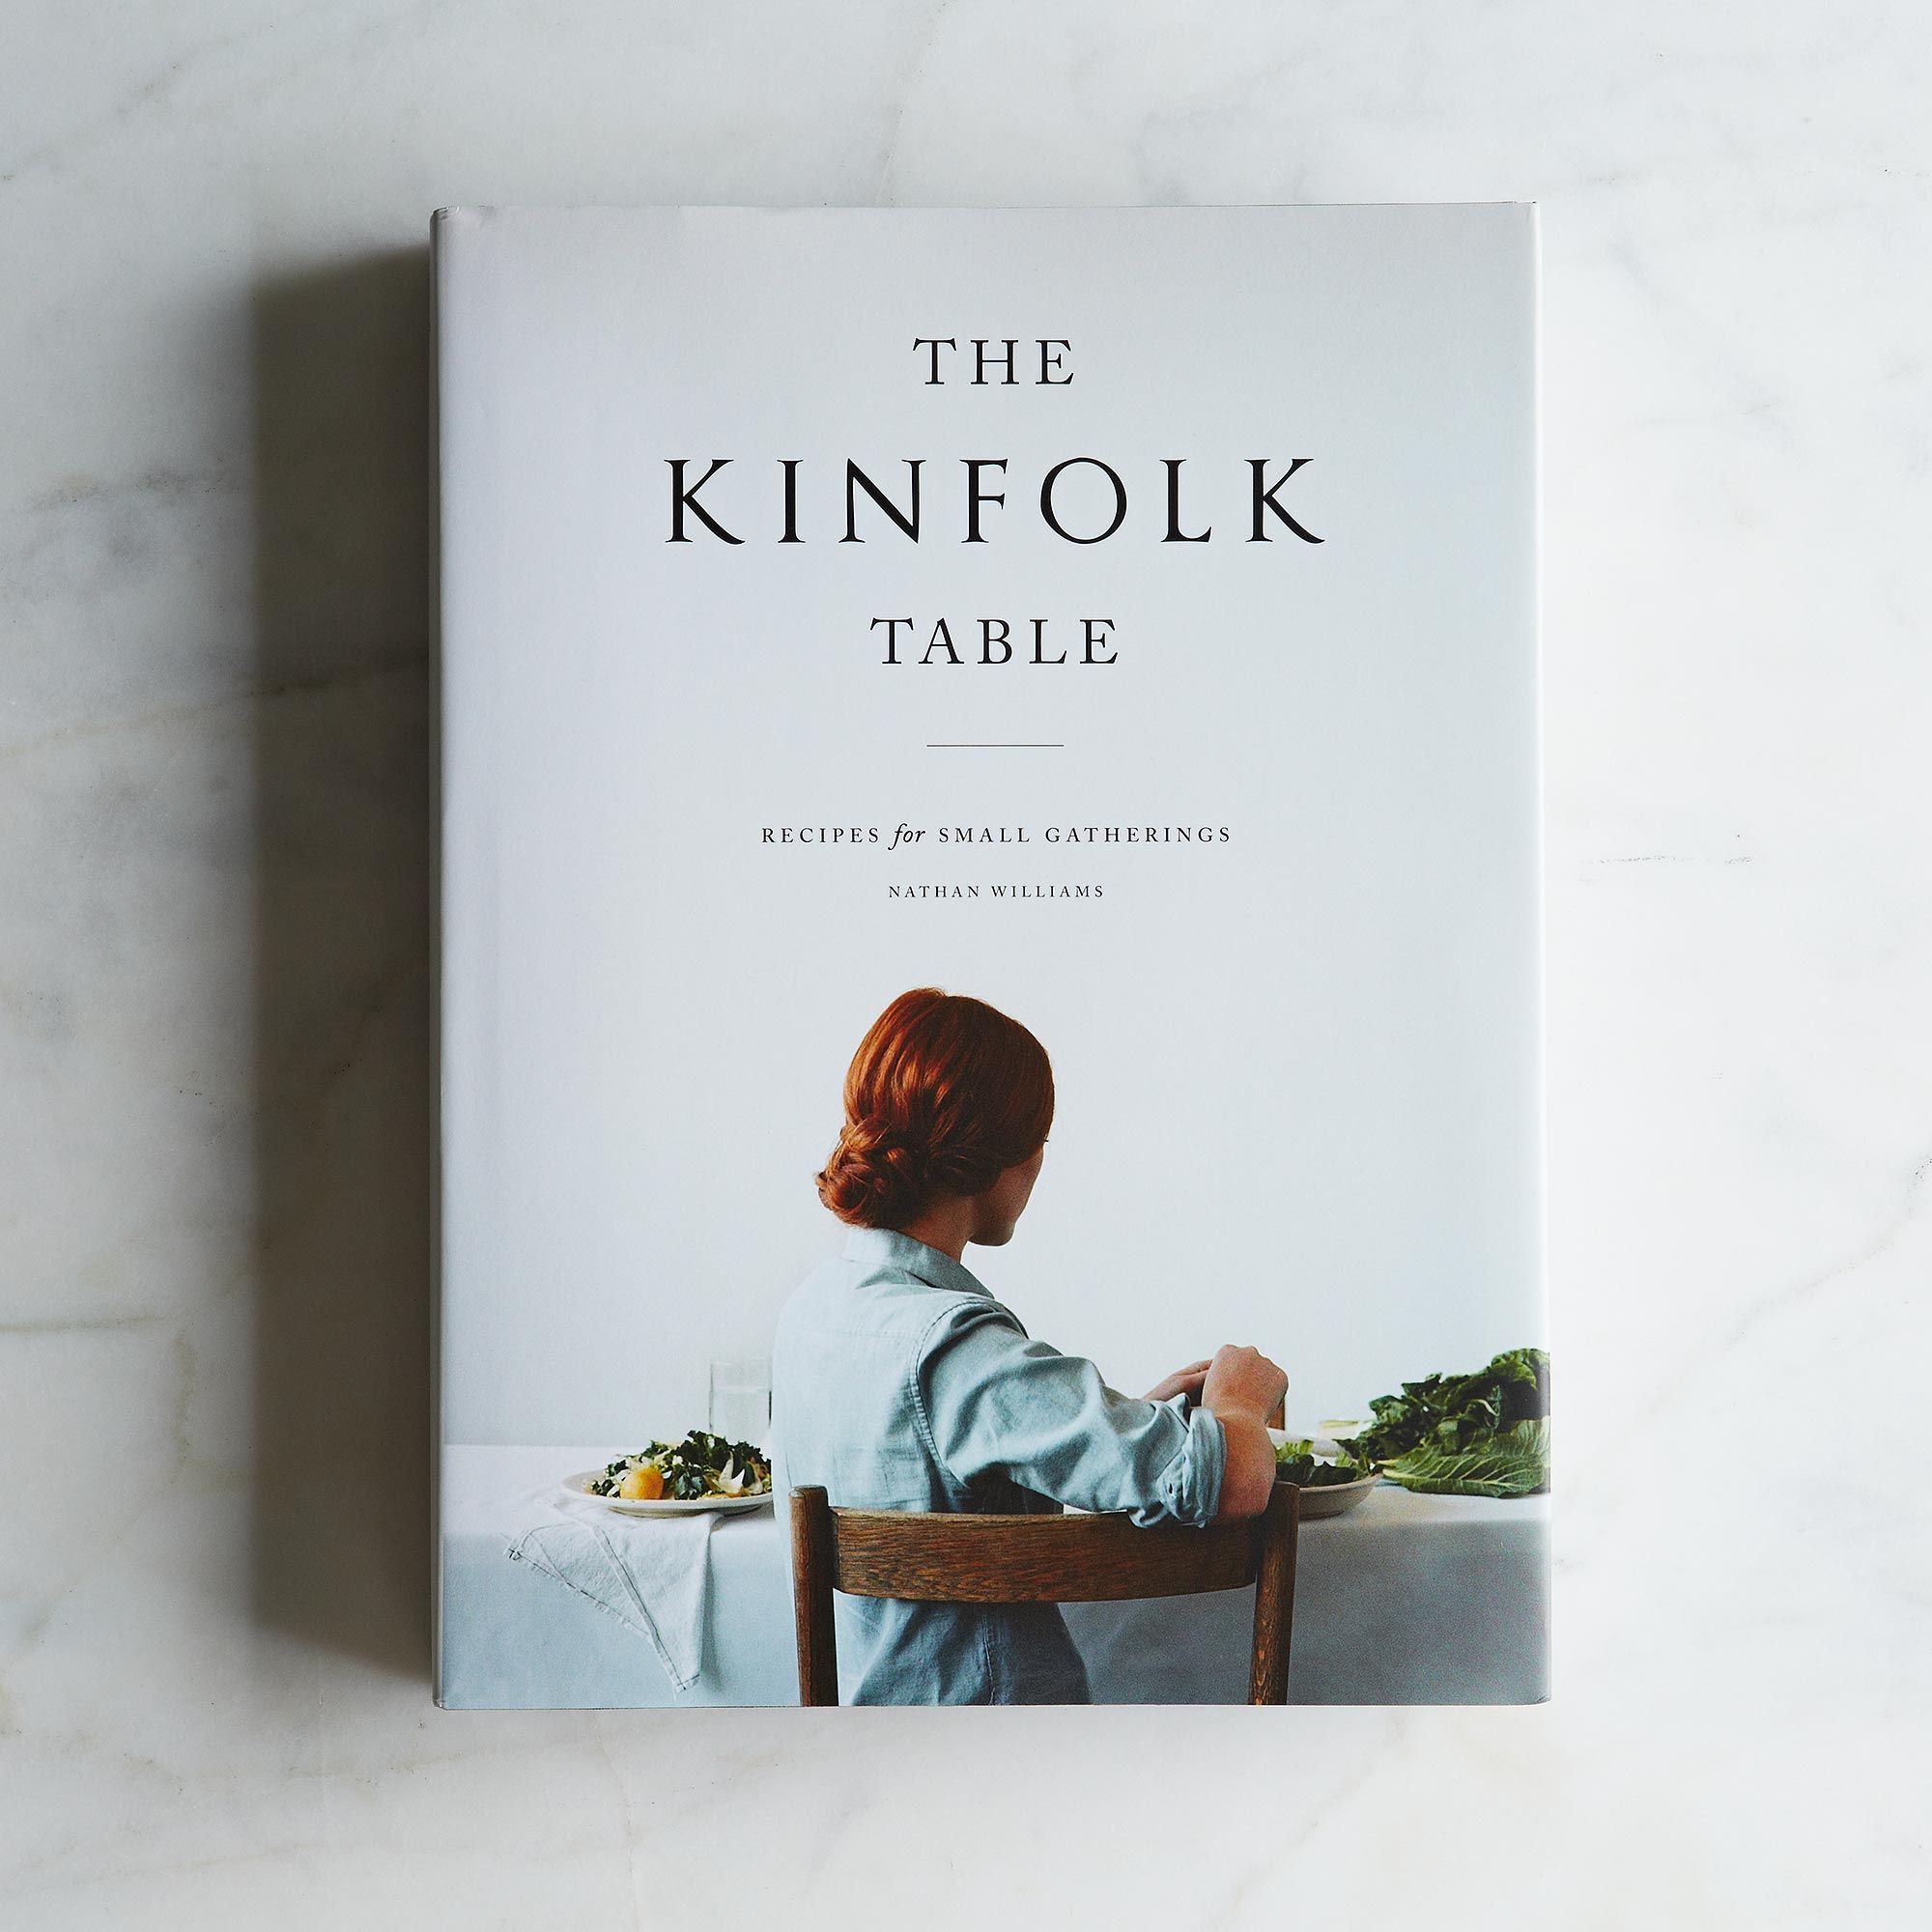 8005b86c a144 4d92 8d25 8578c9f0706b  2014 1112 artisan books the kinfolk table signed 240